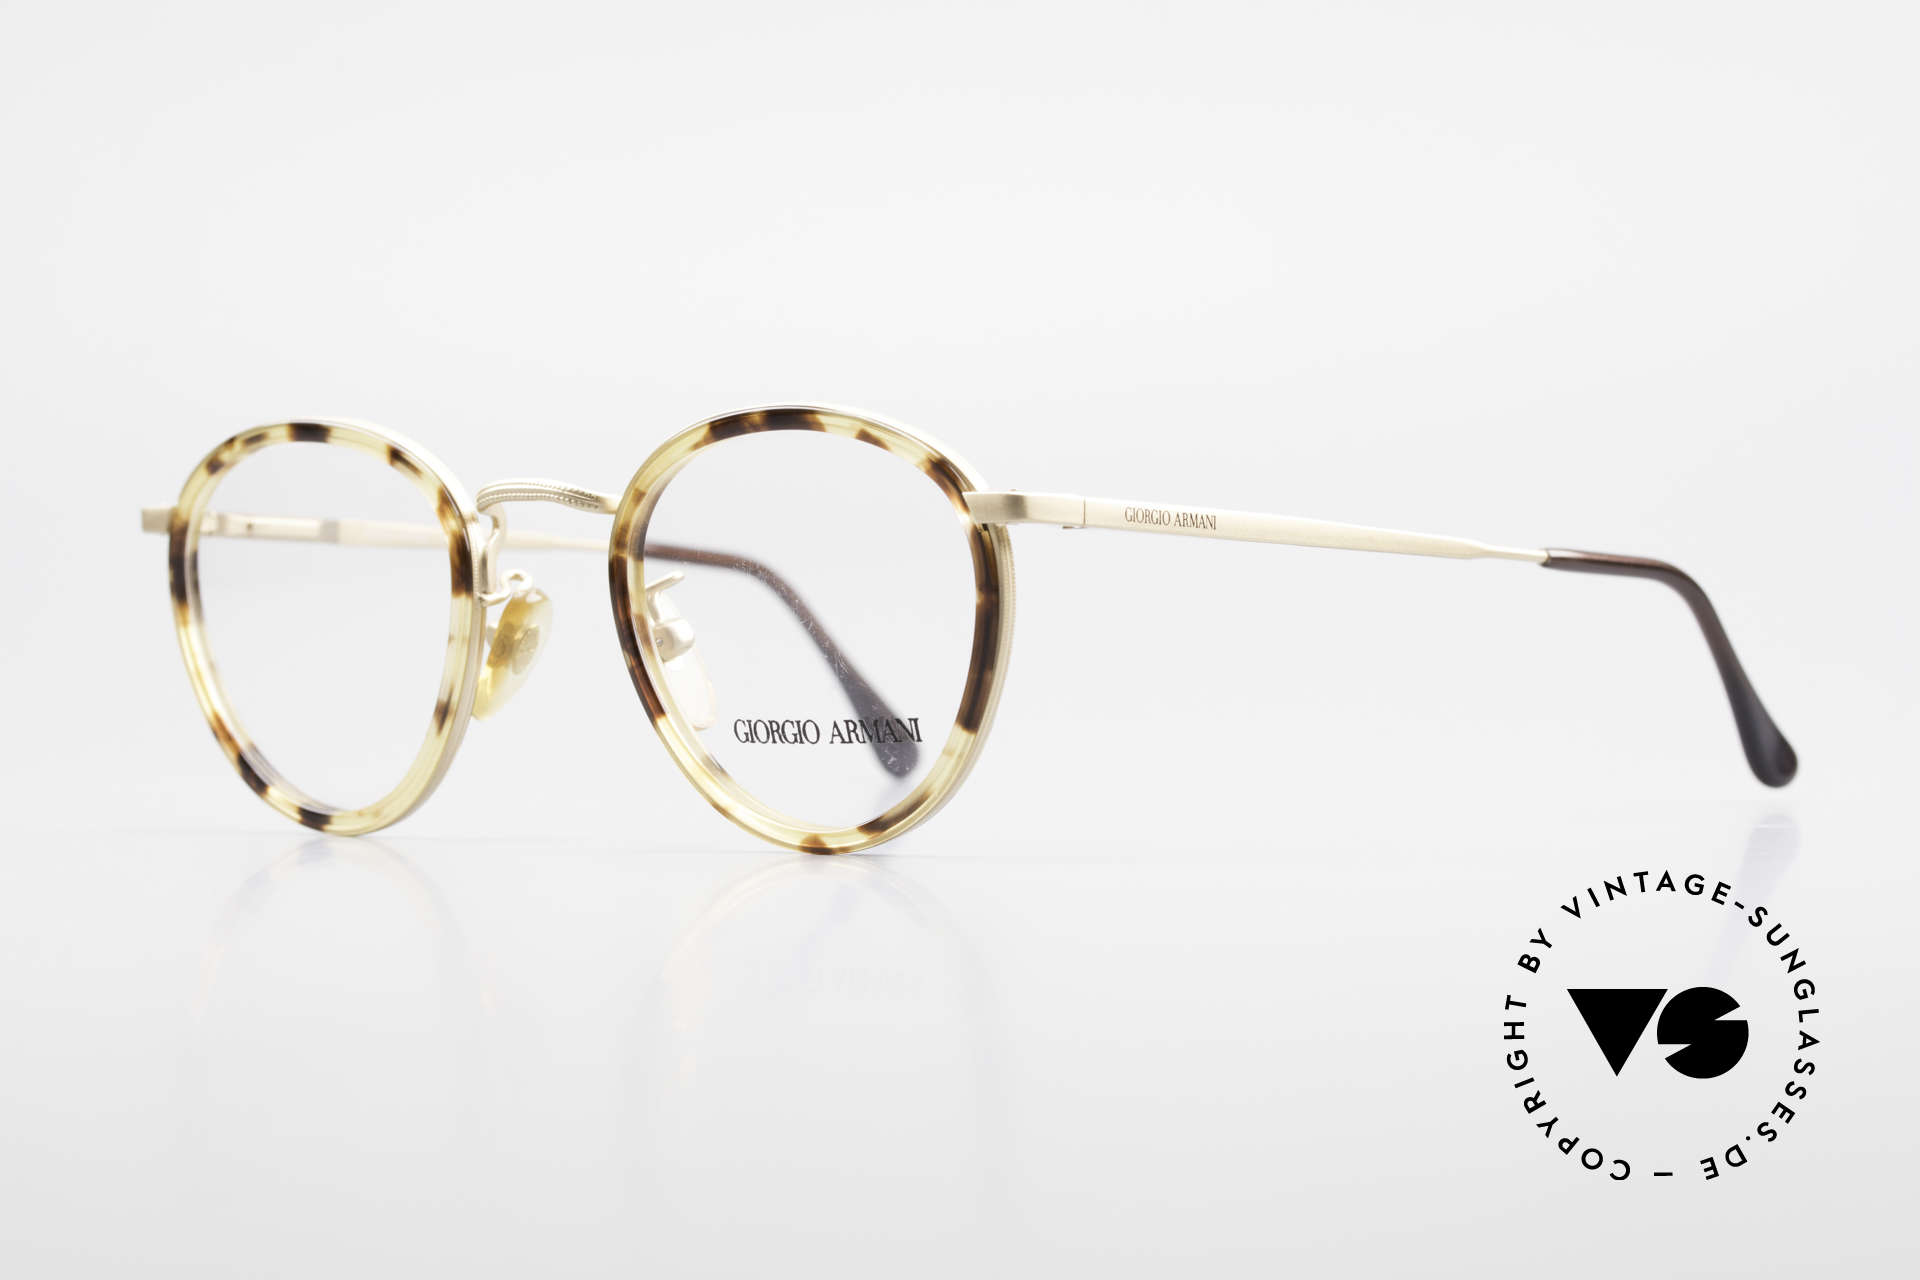 Giorgio Armani 159 Panto Glasses Windsor Rings, refined with windsor rings and flexible spring hinges, Made for Men